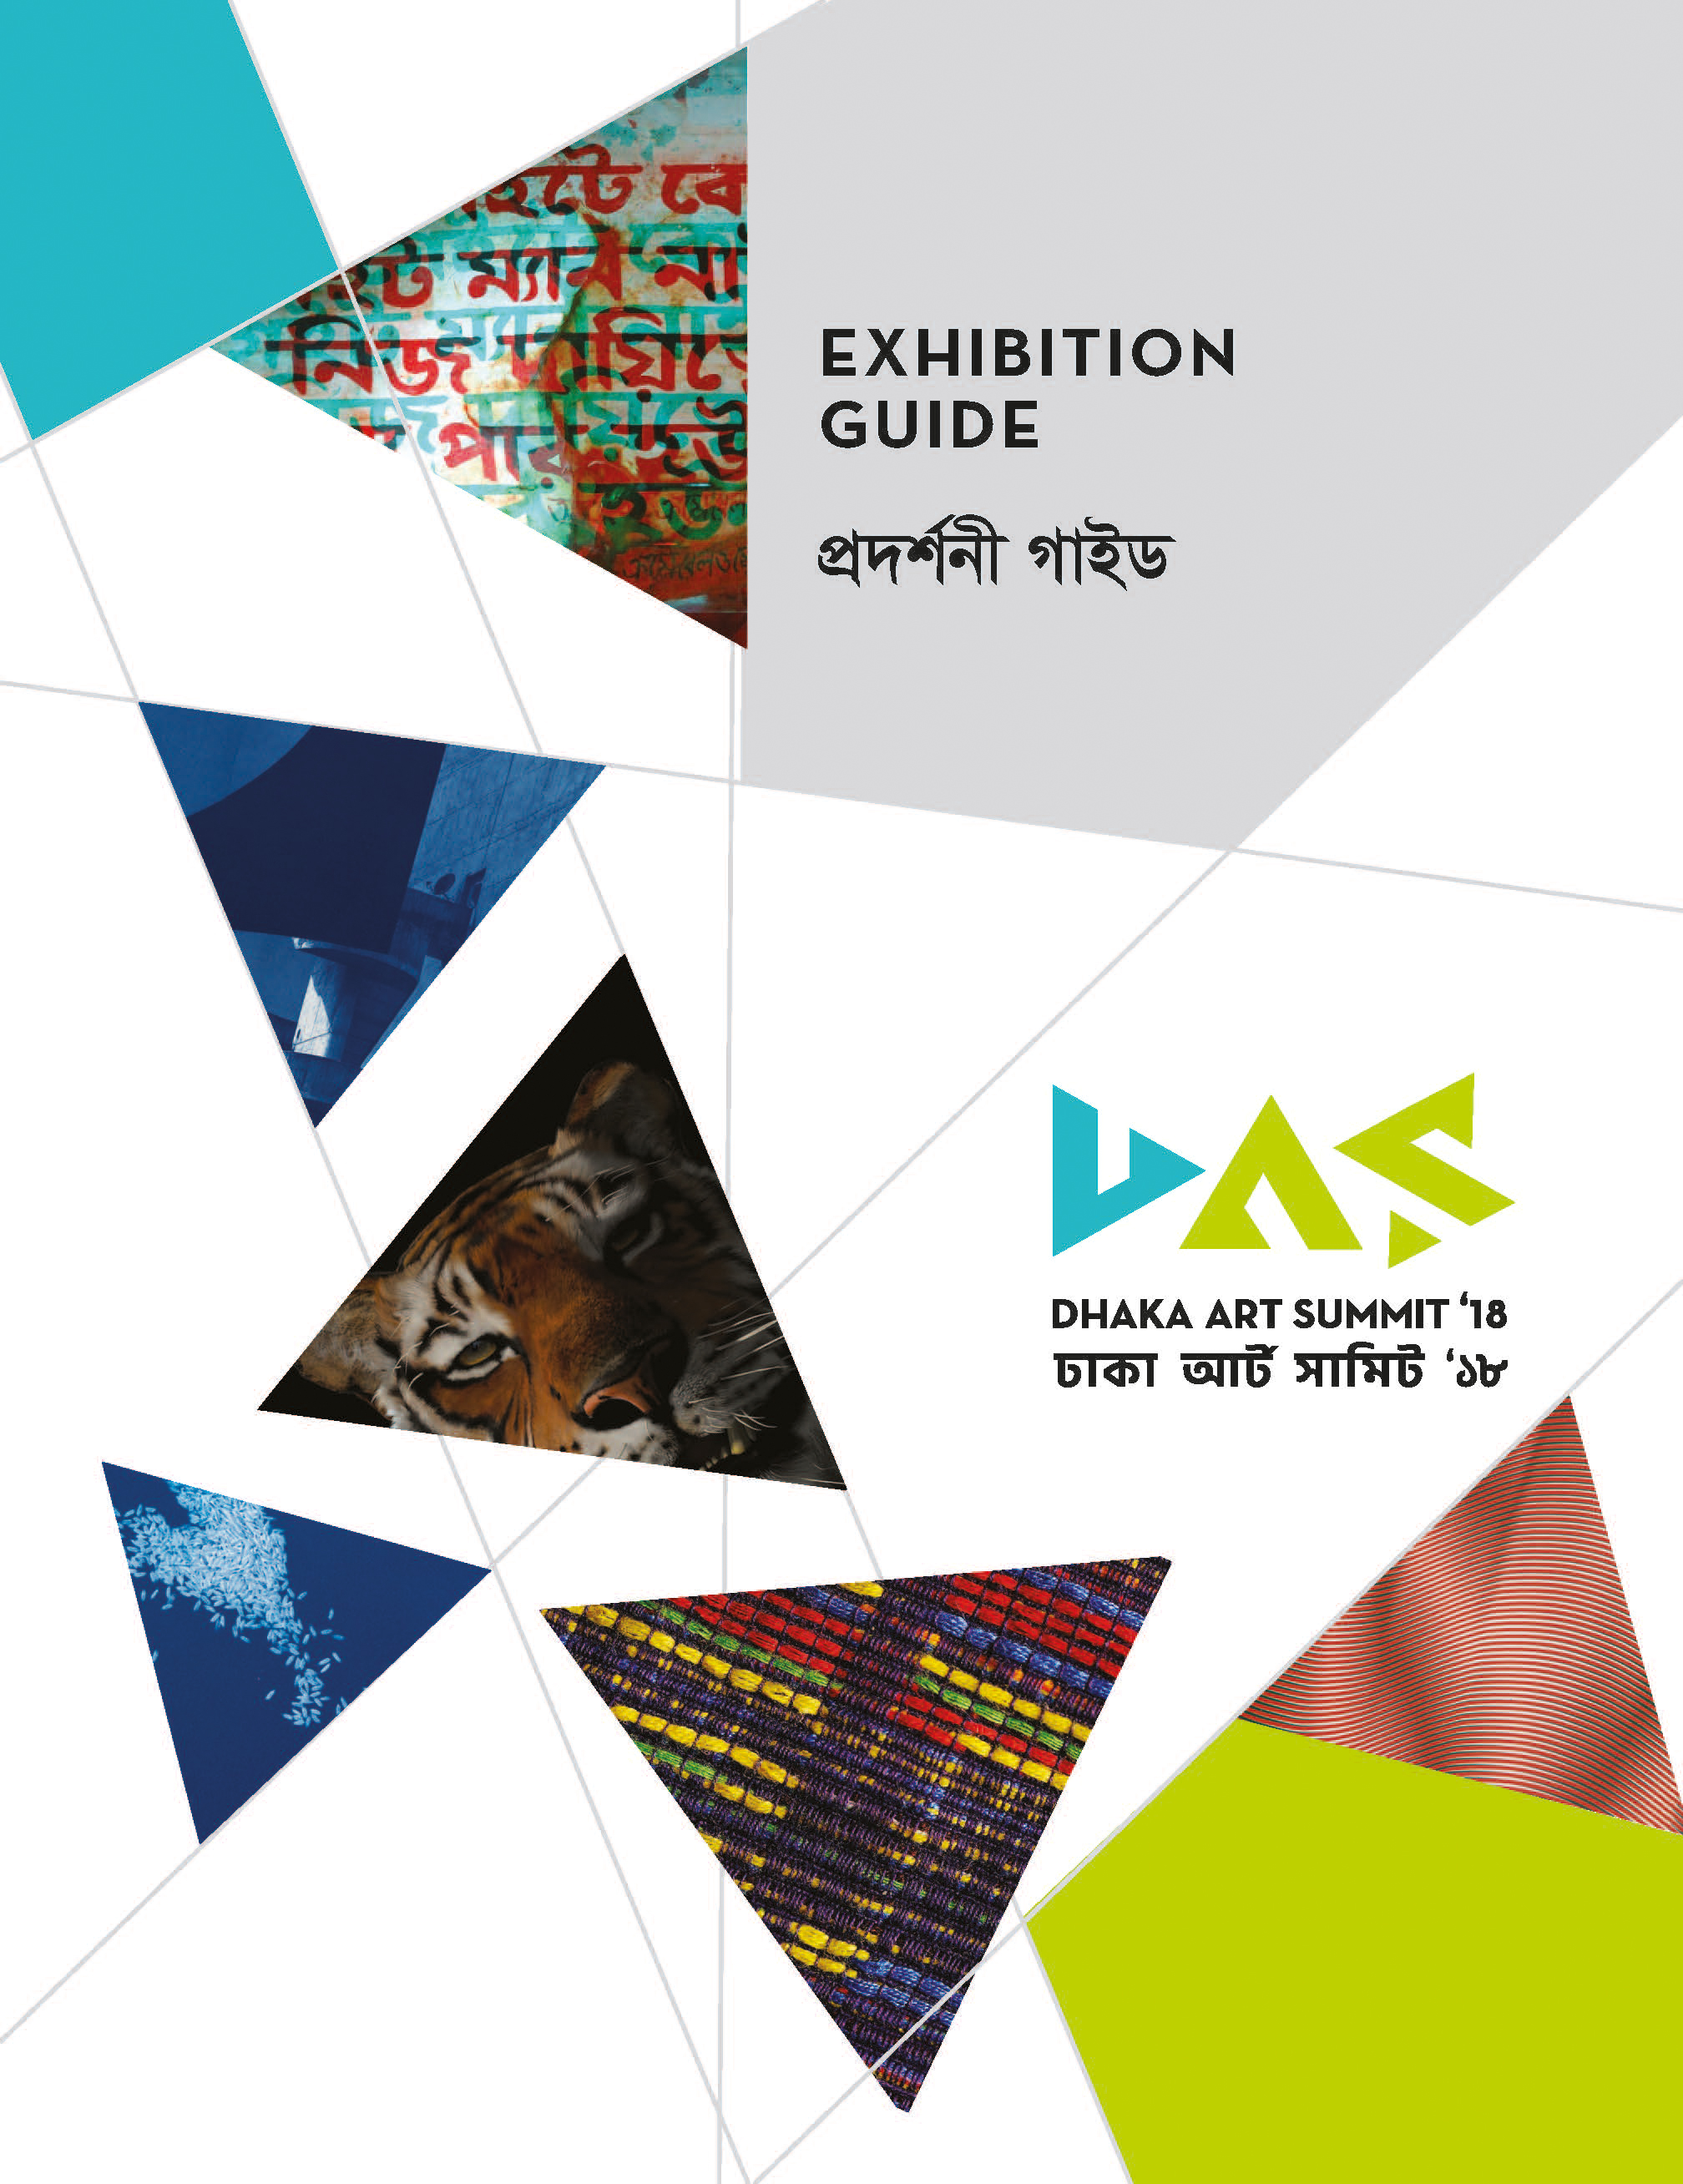 DAS 2018 Exhibition Guide